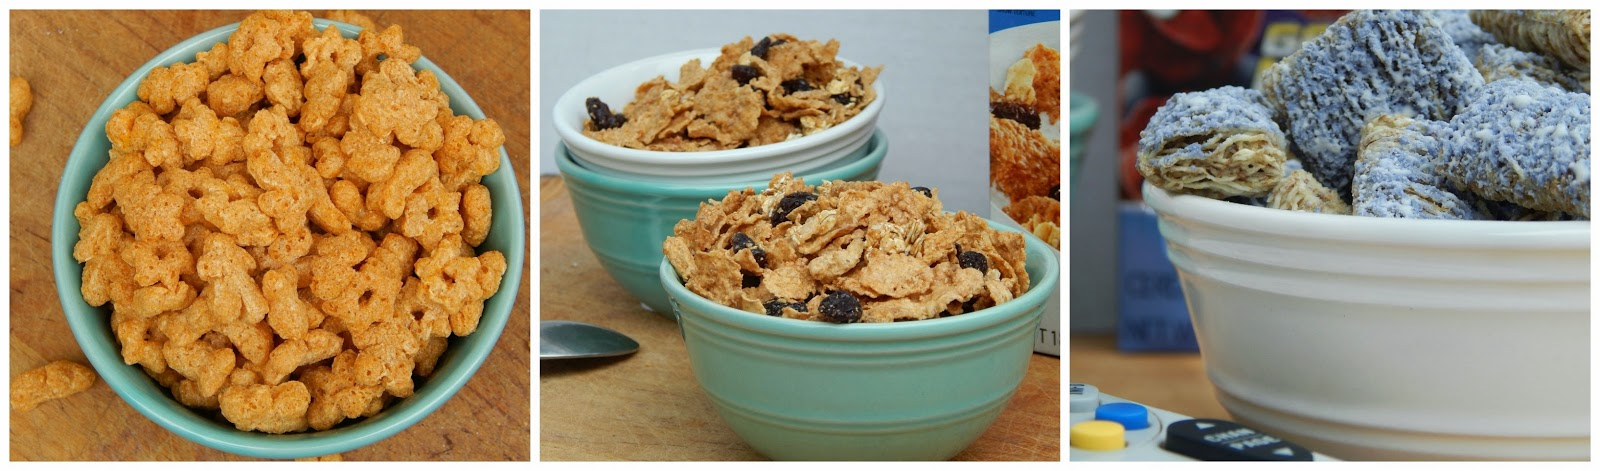 Kellogg's #GoodNightSnack cereal ideas #shop #cbias